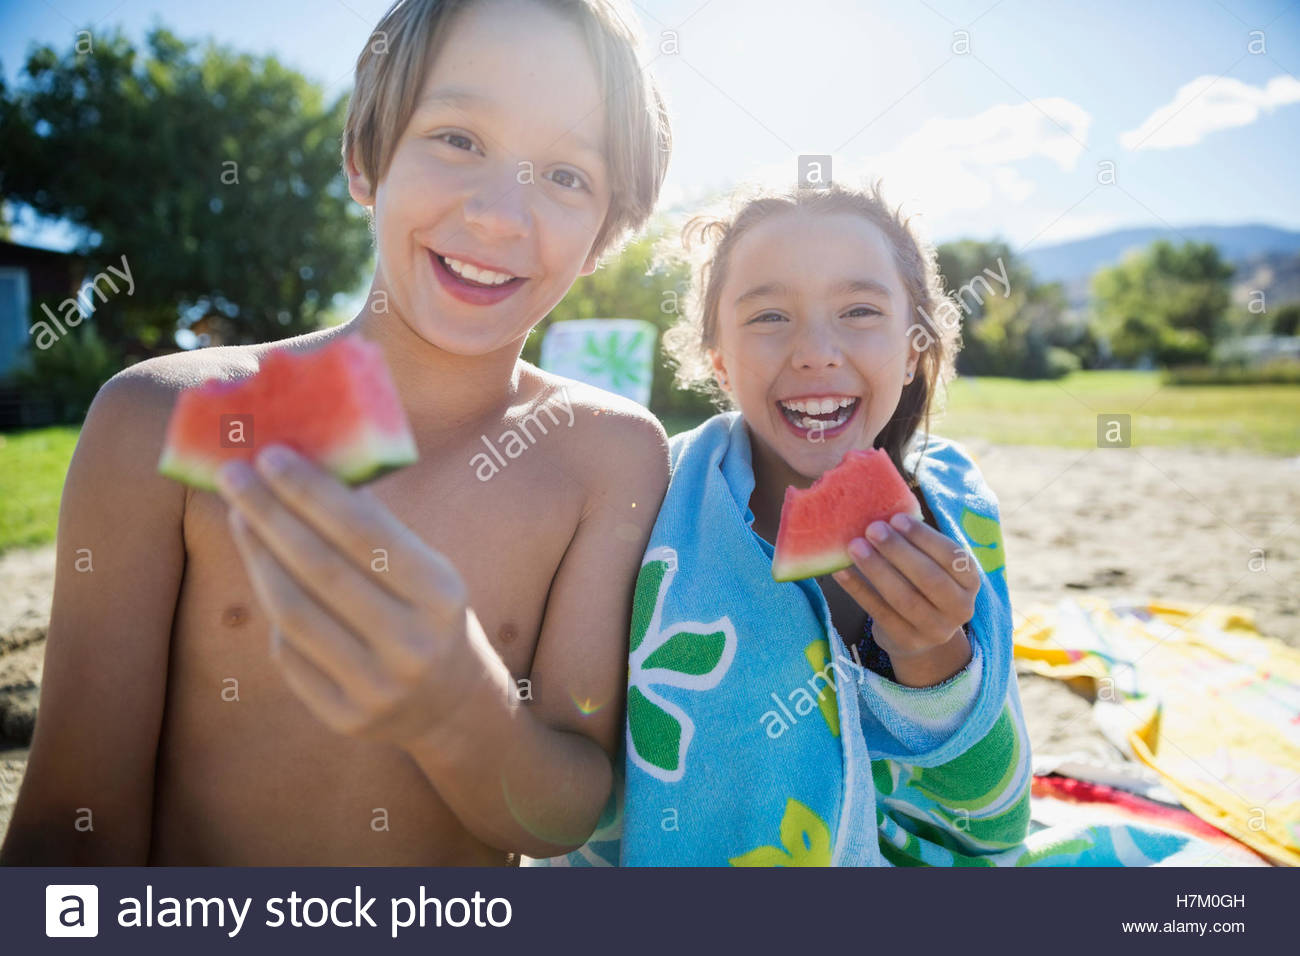 Portrait of smiling brother and sister eating watermelon on sunny summer beach Photo Stock